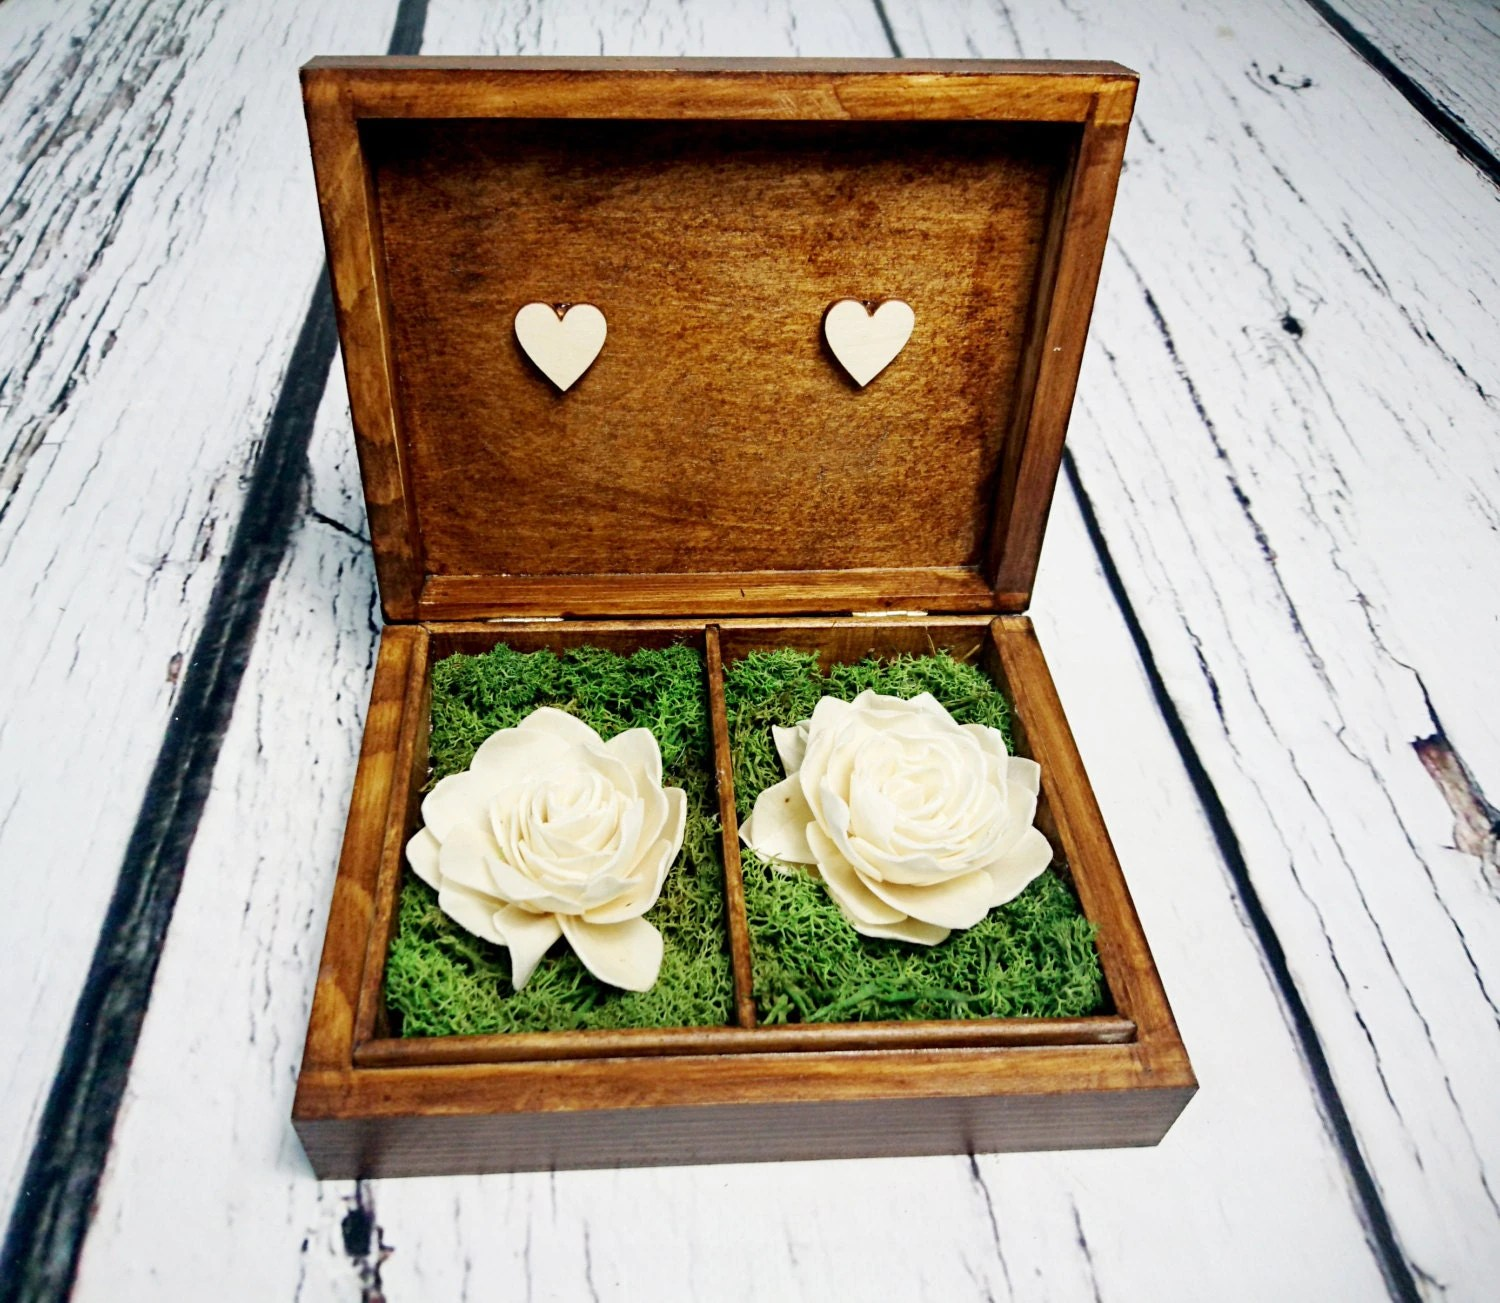 wedding rings box vintage puzzle love puzzle wedding rings Wedding rings box vintage puzzle love wedding pillow rustic looking old moss sola flowers shabby chic brown hearts distressed